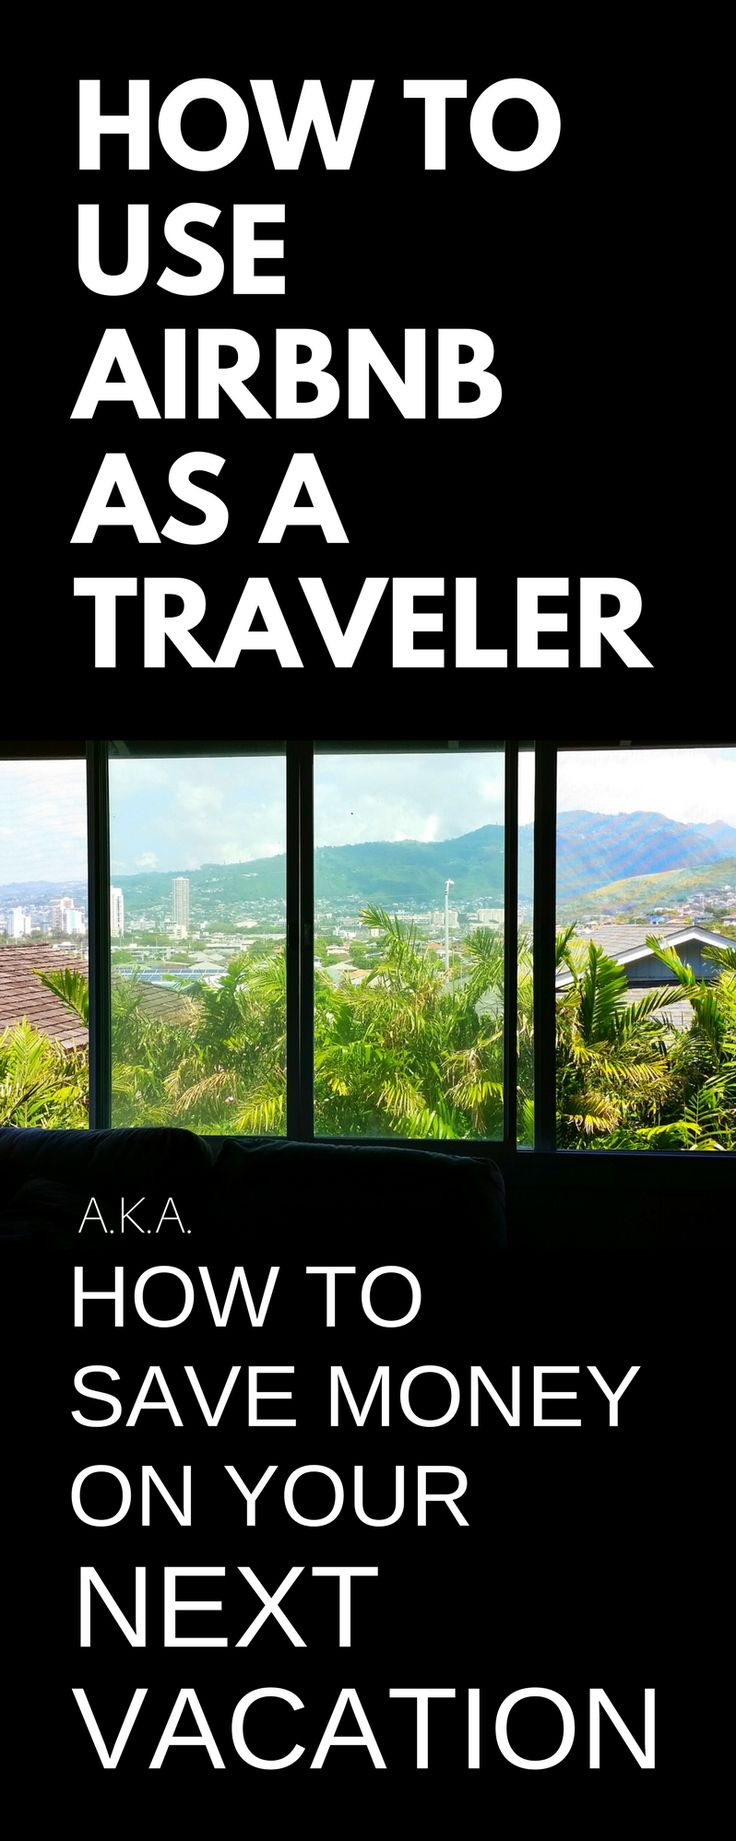 How to save money on trip or vacation. Budget travel tips, ideas on how to use airbnb instead of hotels, hostels. Best for family vacations to Hawaii or California, before cruise from Florida, solo travel, backpacking Europe or Asia, for adventures to bucket list destinations in USA or international travel. College students can save money on weekend trips during study abroad. Luxury, camp options too. Add to checklist of things to do with packing list essentials! Airbnb discount…